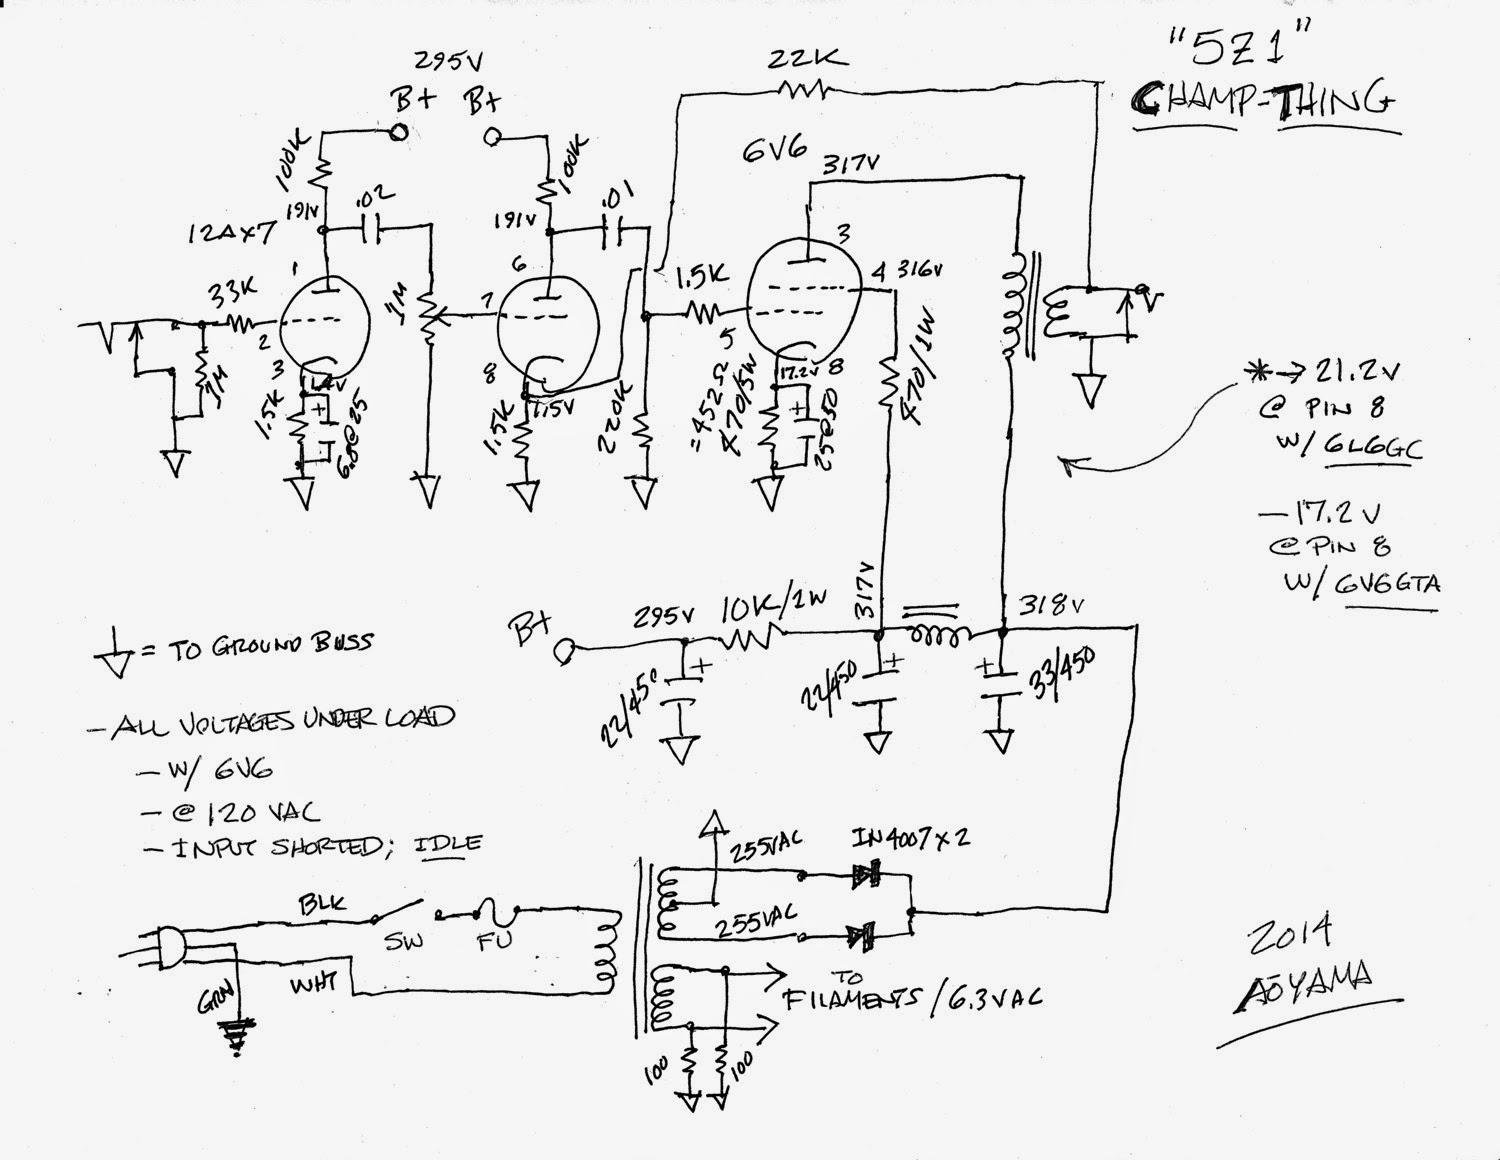 Wiring diagram humor wiring diagrams origami night lamp the 99 cent champ amp part 1 home made guitar amp ccuart Gallery